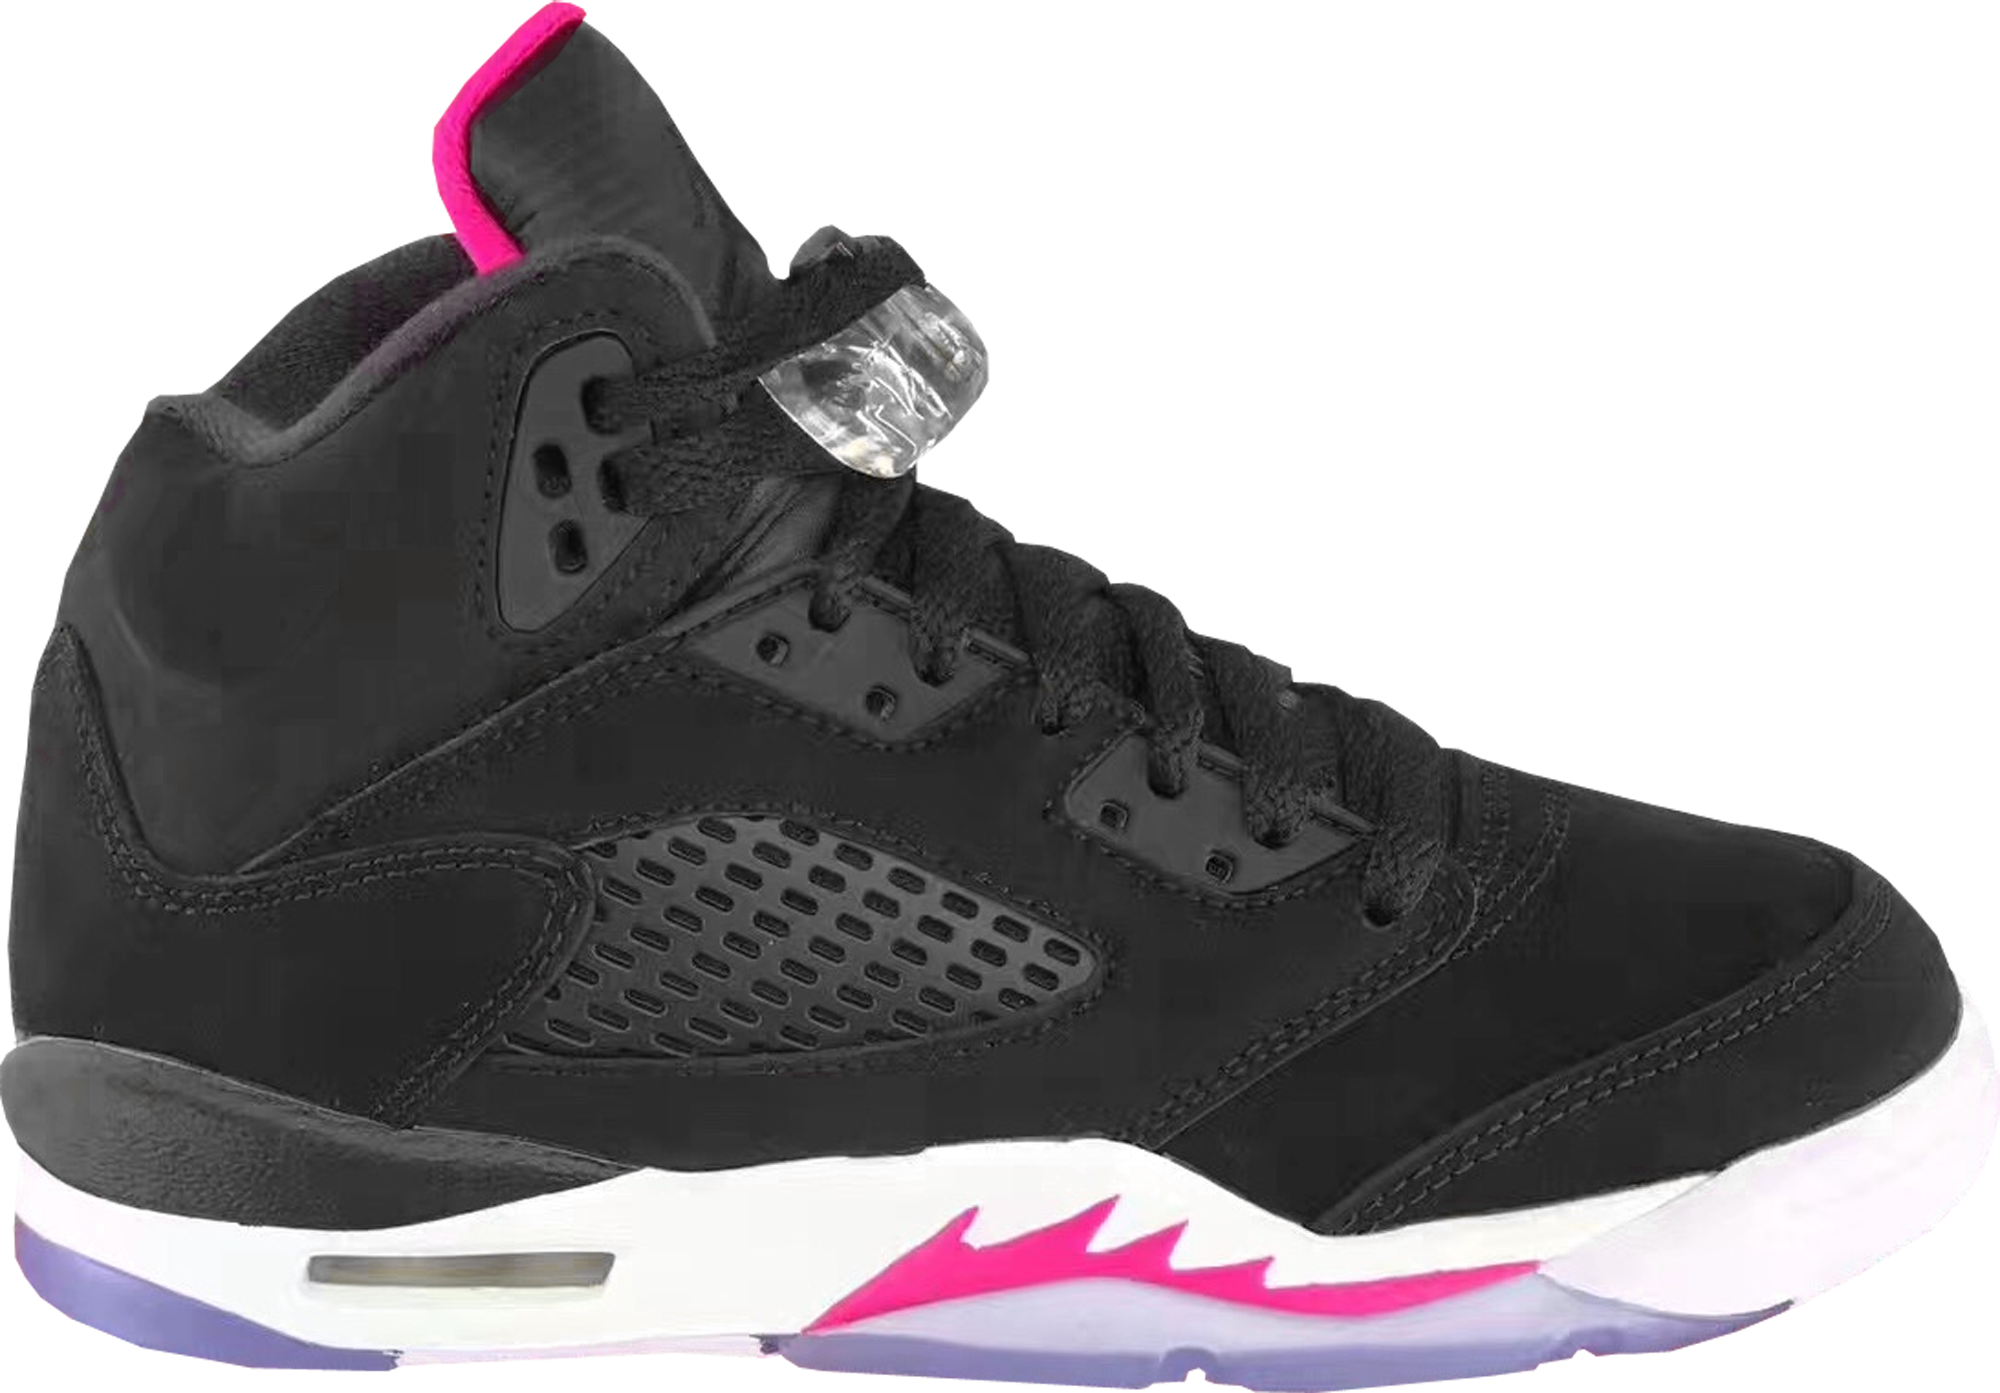 399cf44e08d801 Silver Red And Pink Jordan 5s